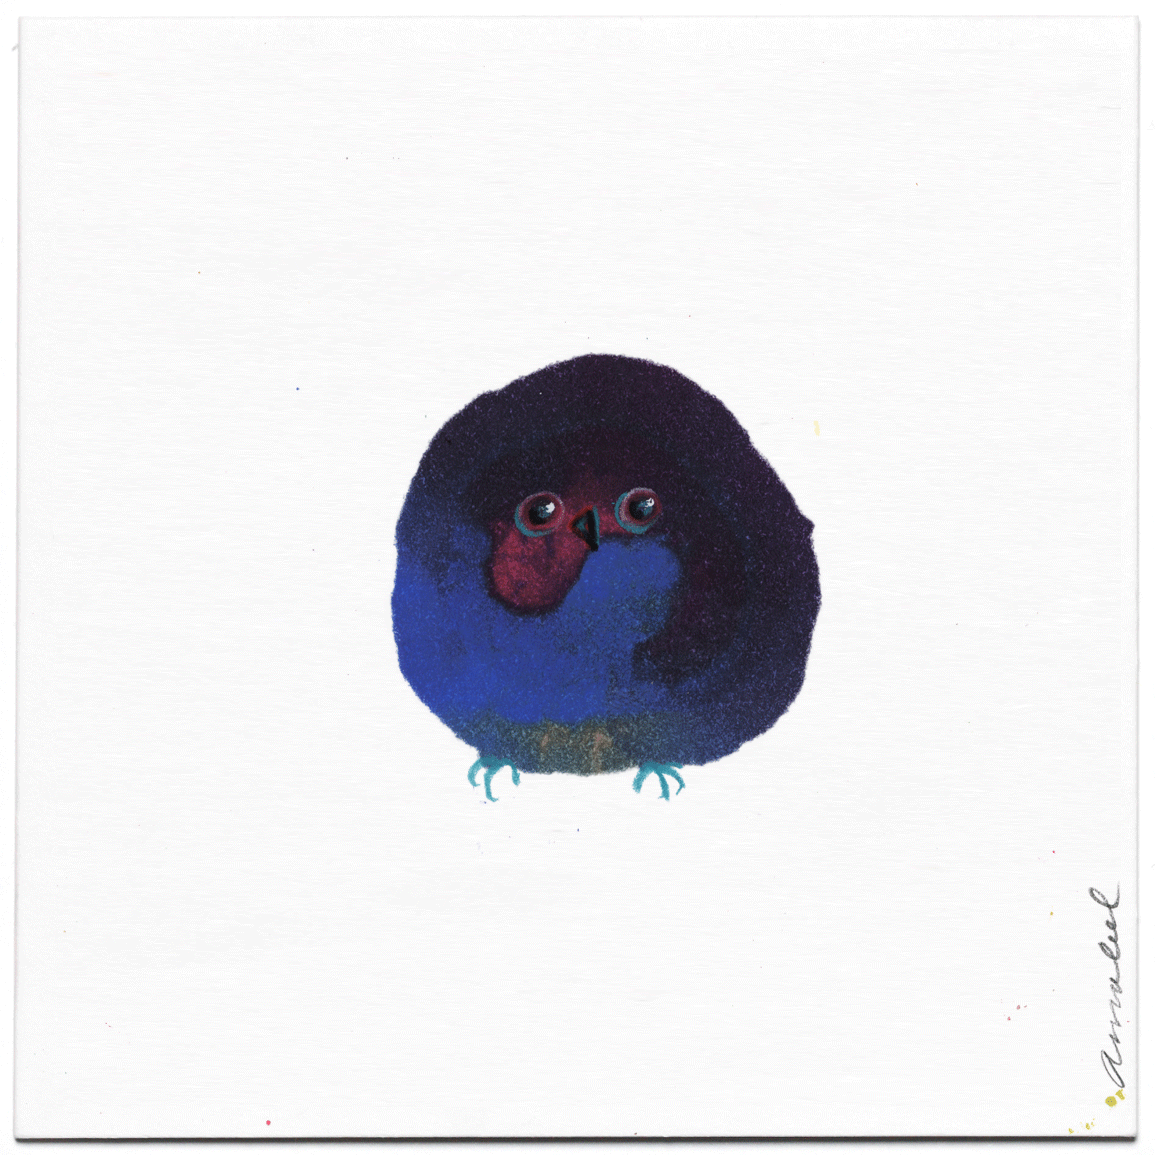 INKDROP BIRD NO.064 - MARINE BLUE & CADMIUM RED - ORIGINAL DRAWING